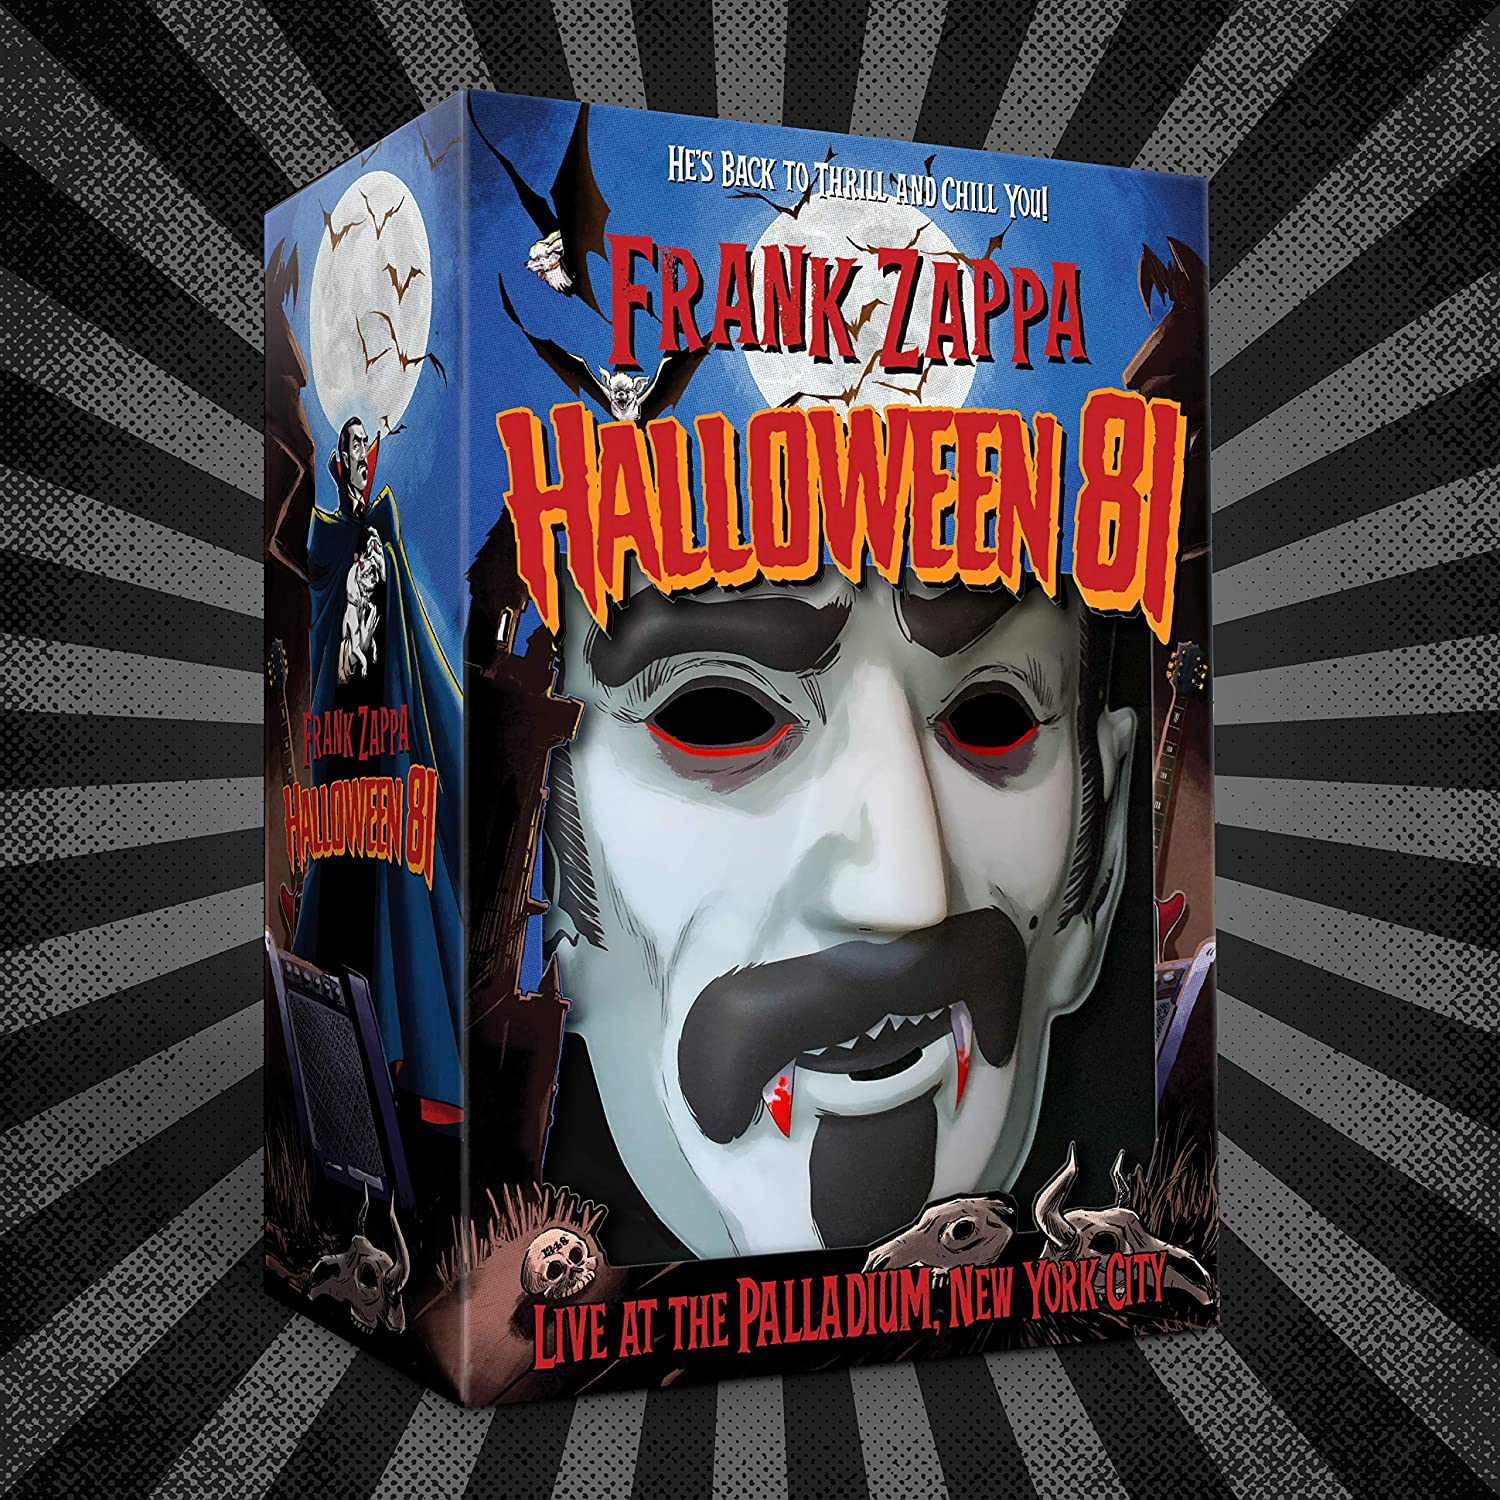 Halloween Nyc Nov 2 2020 Frank Zappa   Halloween 81: Live At The Palladium, NYC [6 CD